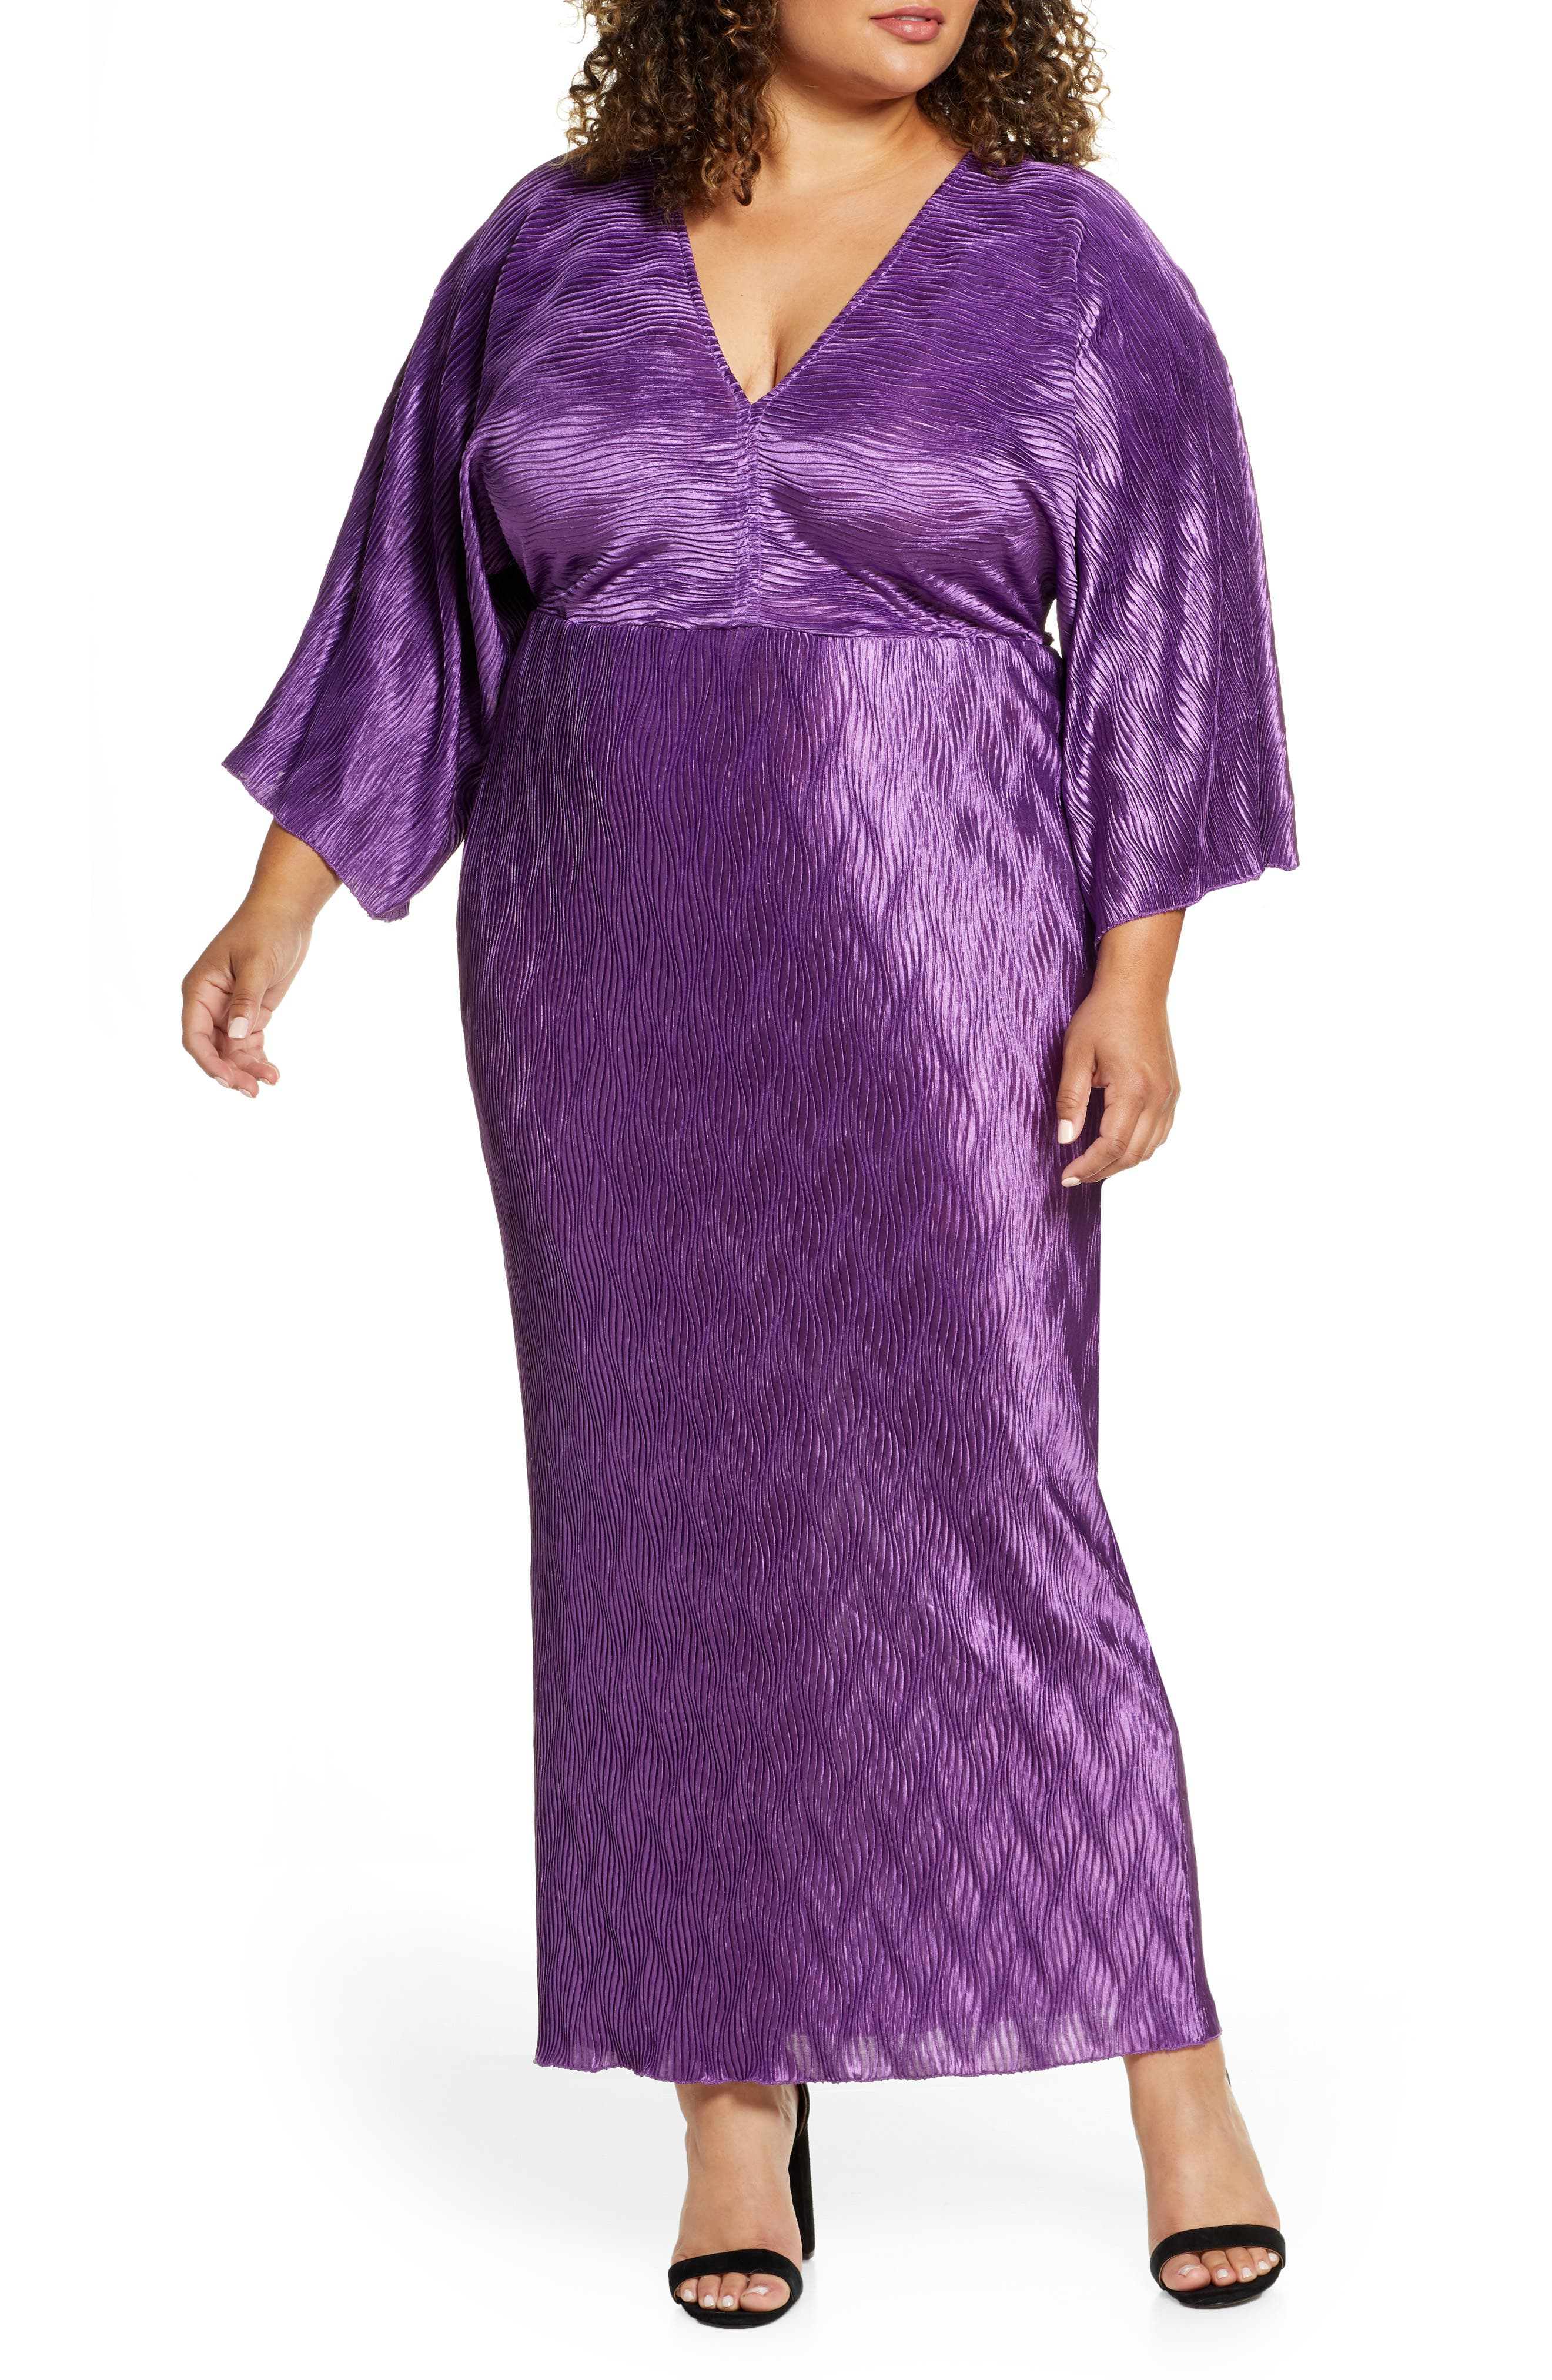 60s 70s Plus Size Dresses, Clothing, Costumes Plus Size Womens Eloquii Textured Long Sleeve Maxi Dress Size 14W - Purple $54.99 AT vintagedancer.com